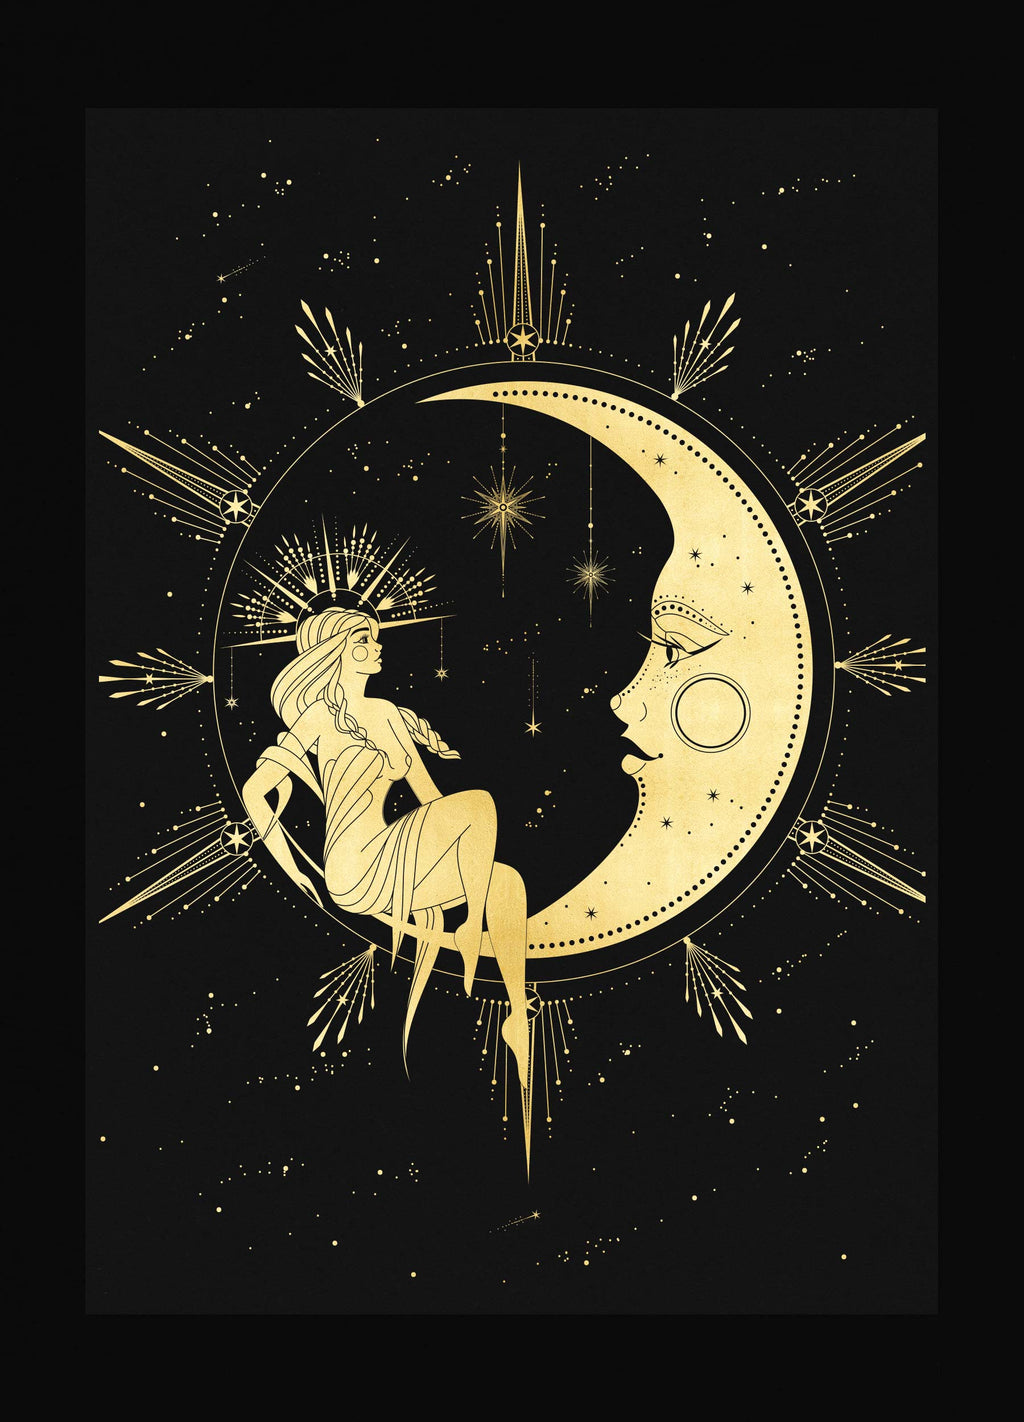 The Moon & The Witch Gold foil art print on black paper by Cocorrina & Co Shop